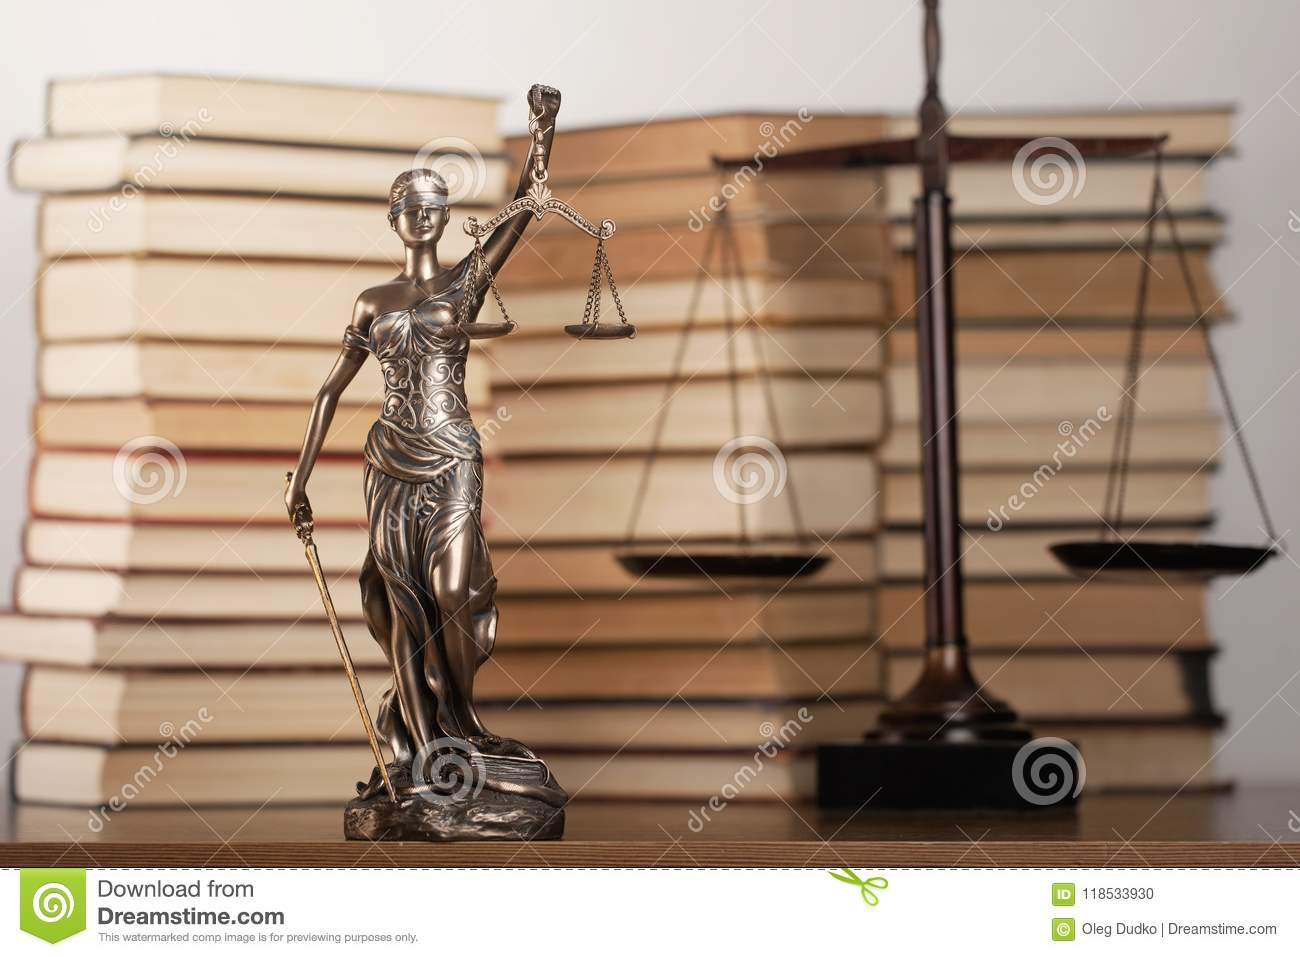 Statue of justice and book